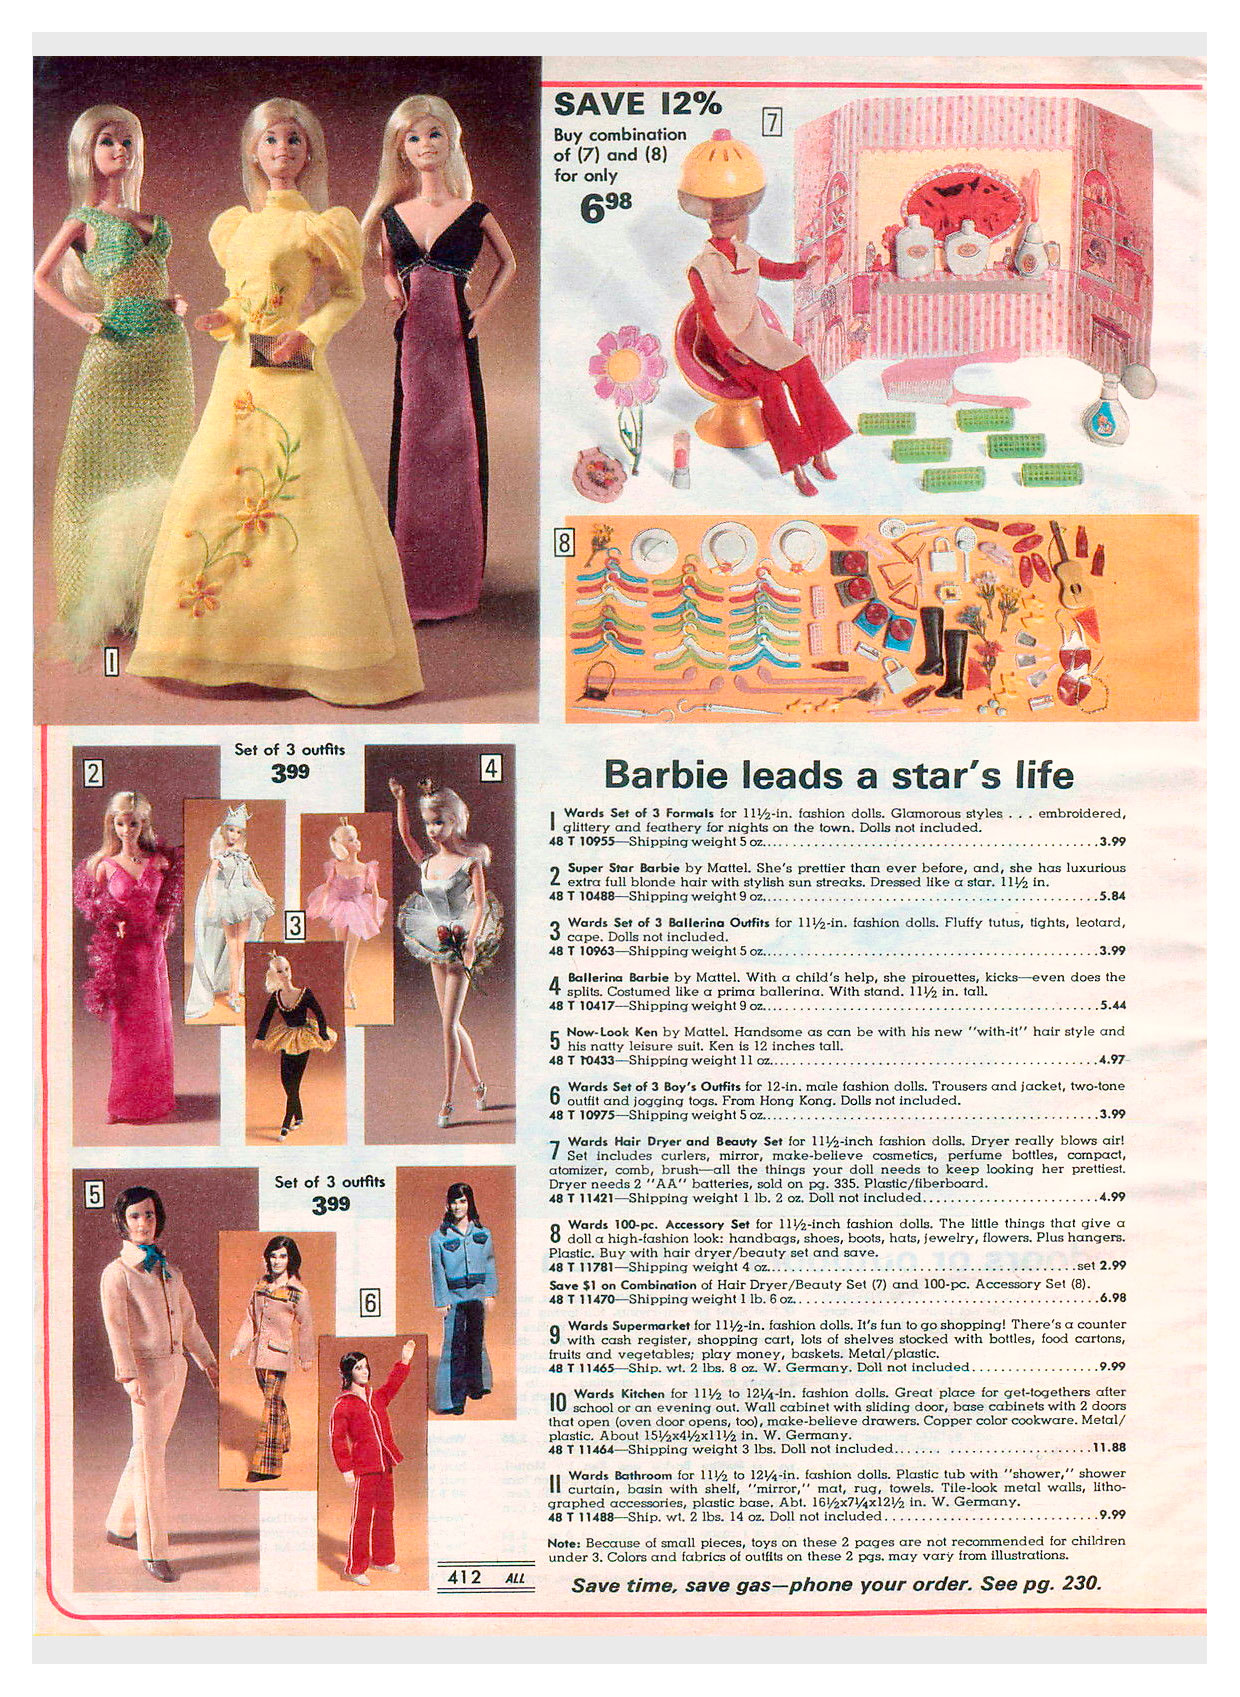 From 1977 Montgomery Ward Christmas catalogue